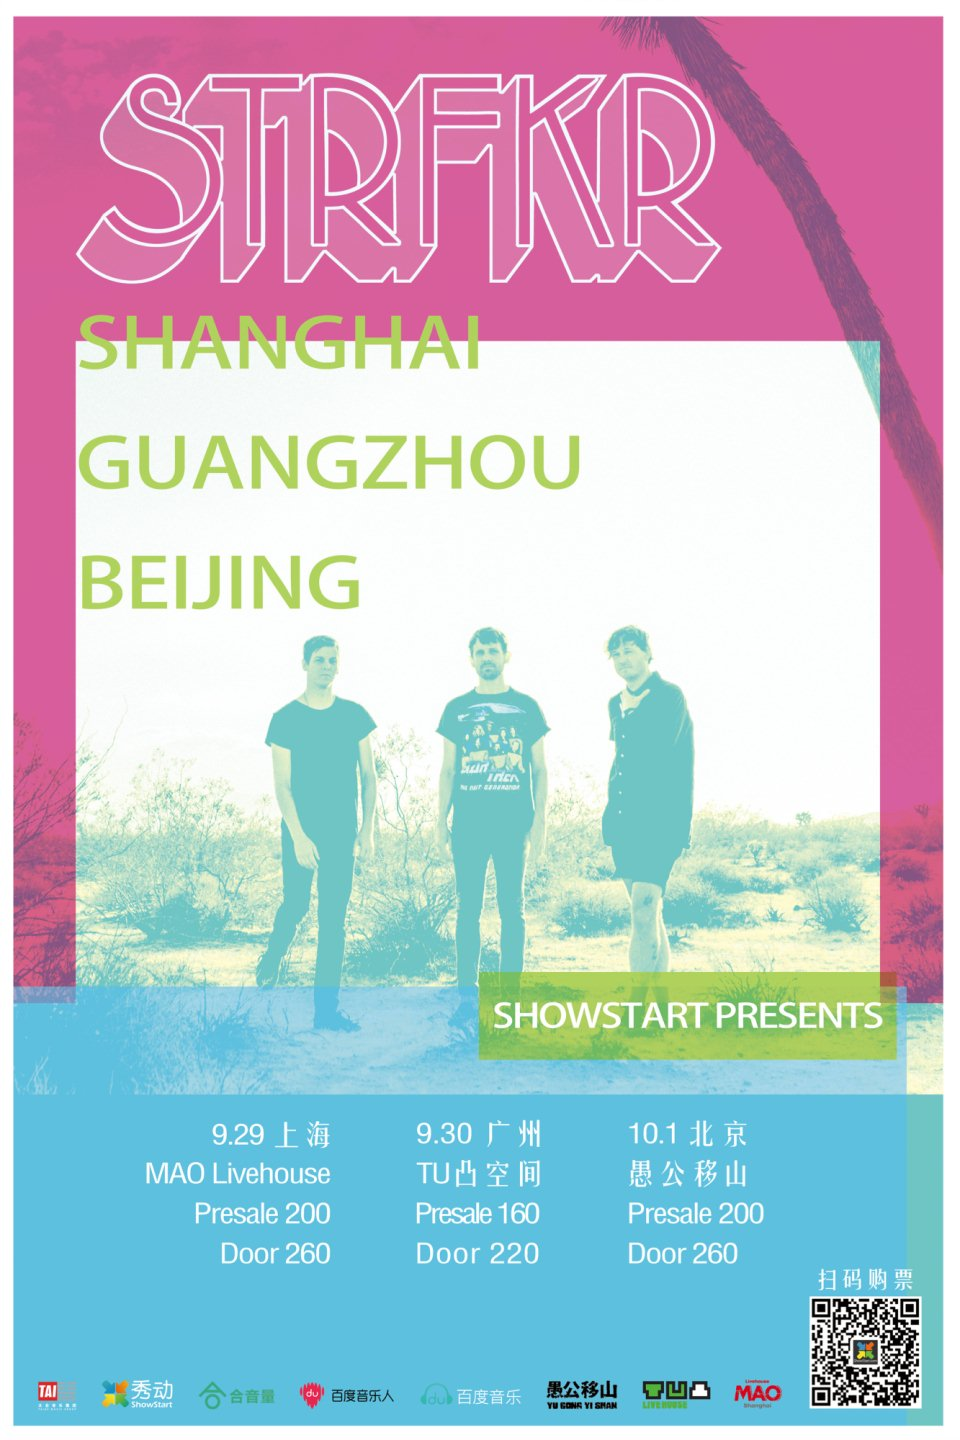 strfkr-2017-china-tour-poster